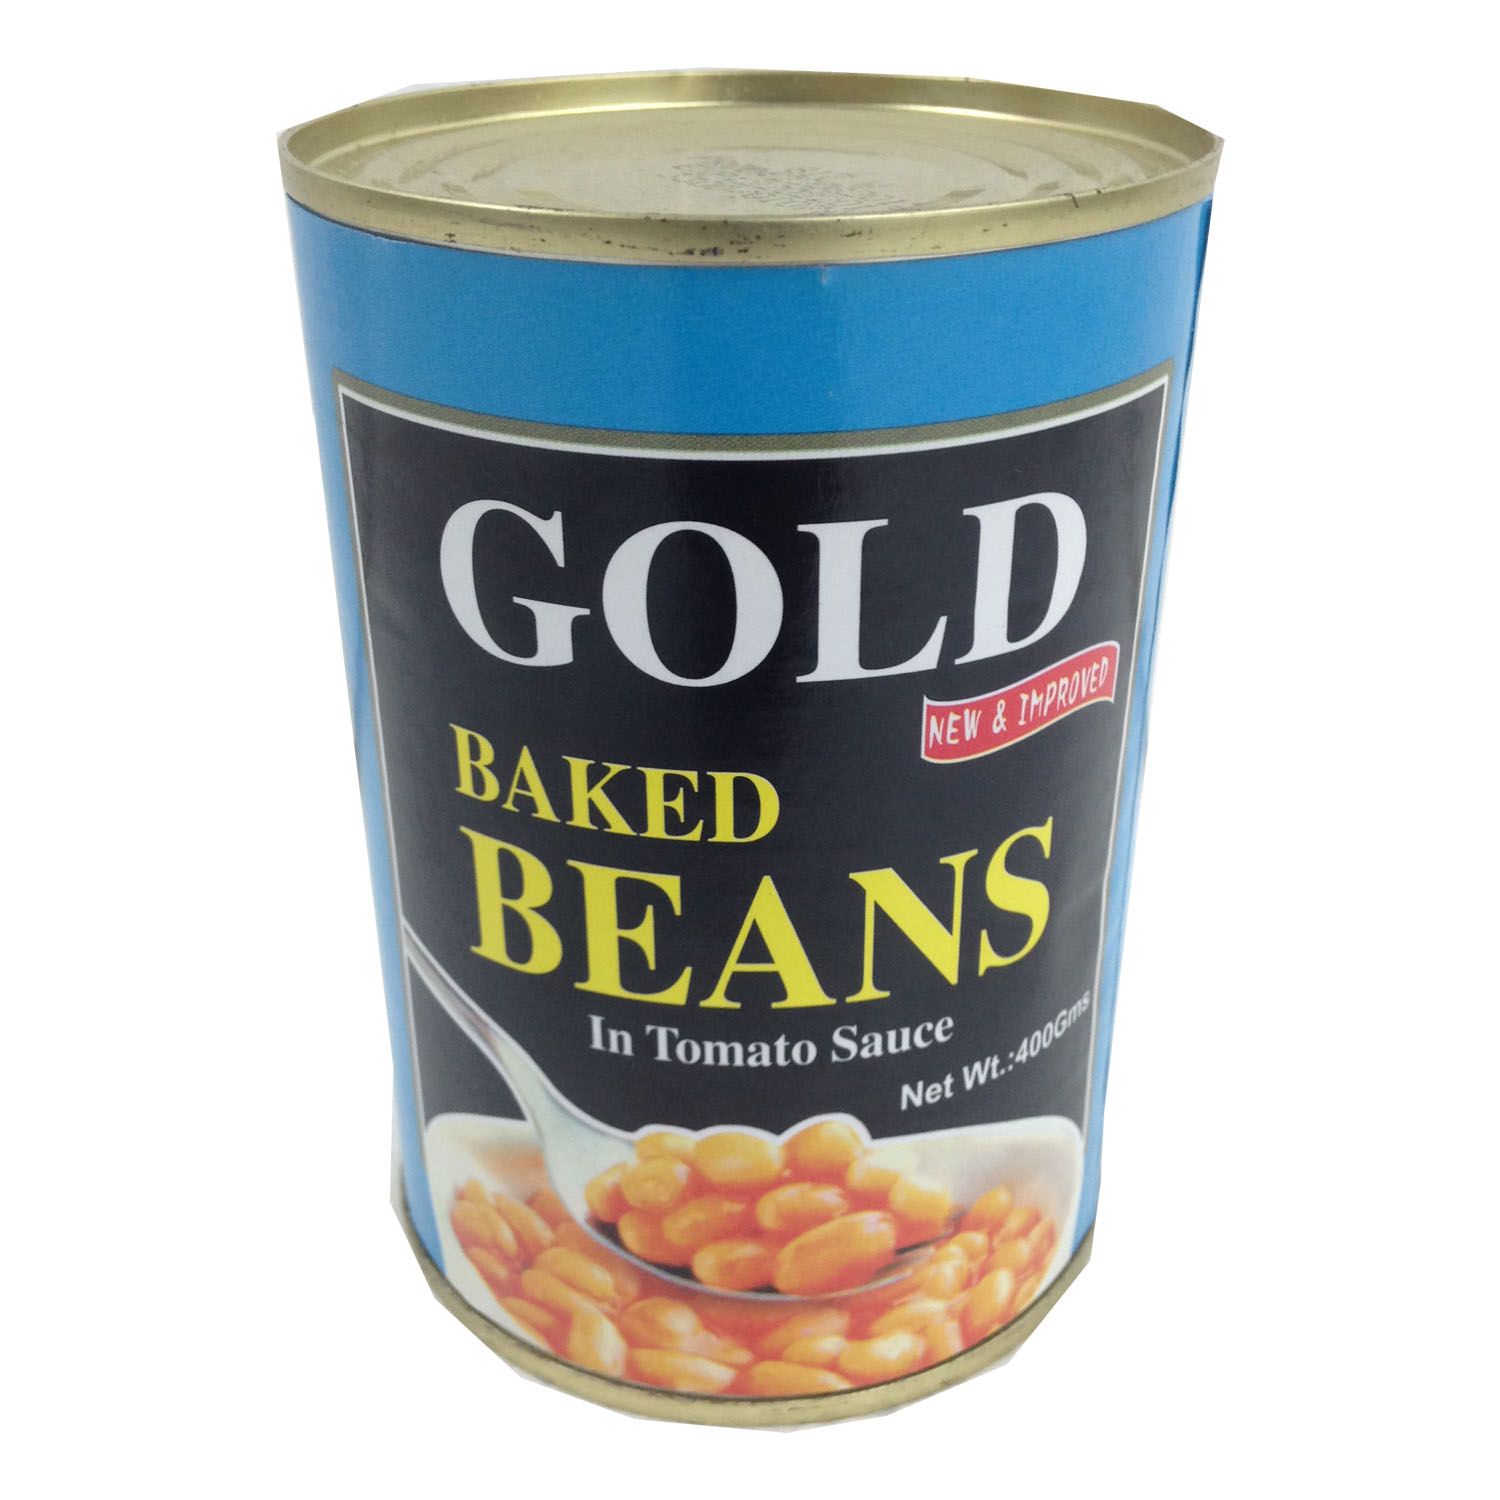 GOLD Baked Beans In Tomato Sauce